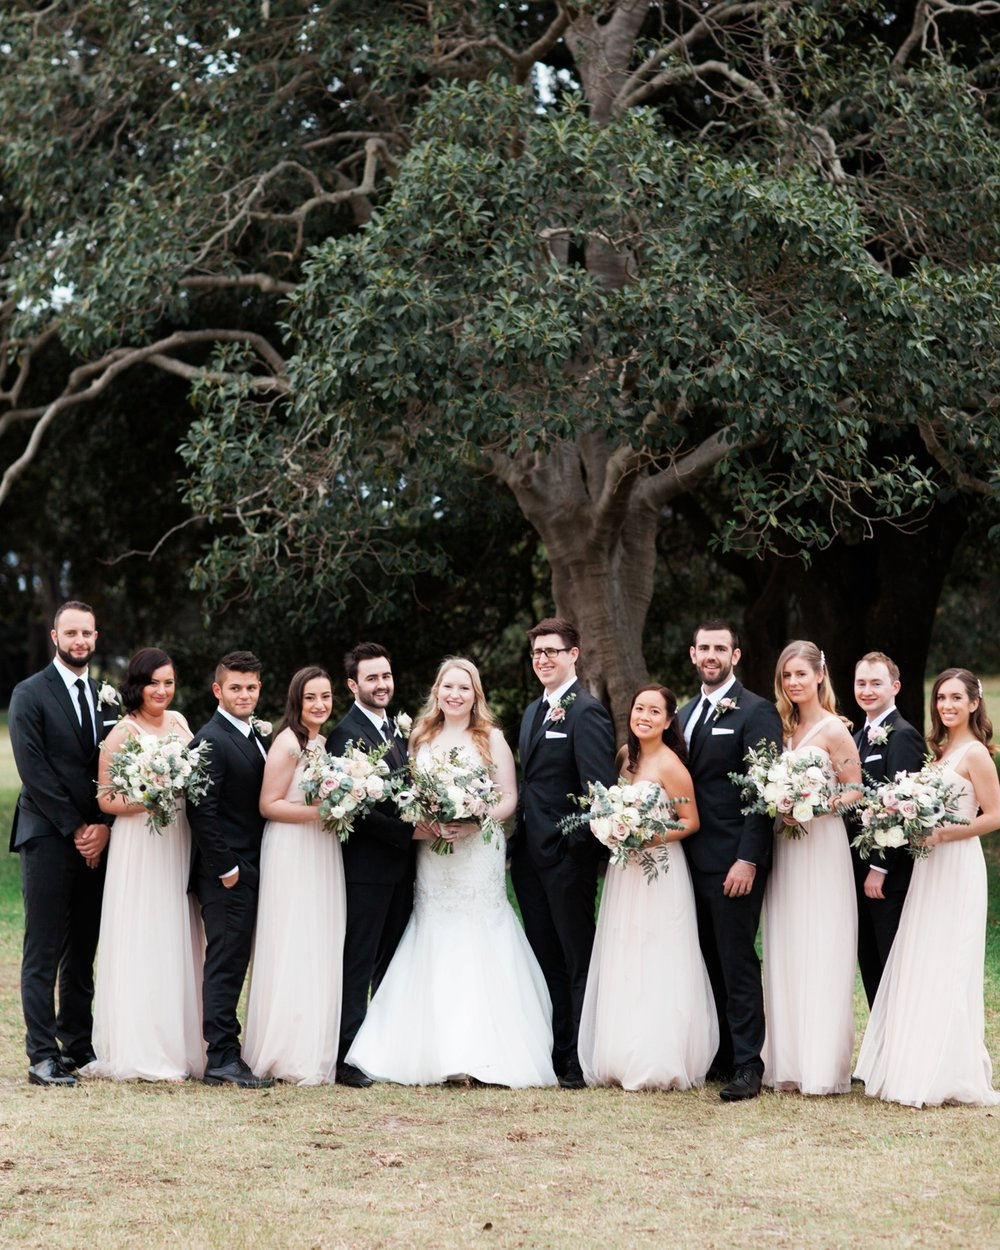 Tiia and Lukes Centennial Parklands Wedding by Mr Edwards Sydney Wedding Photography_2288.jpg